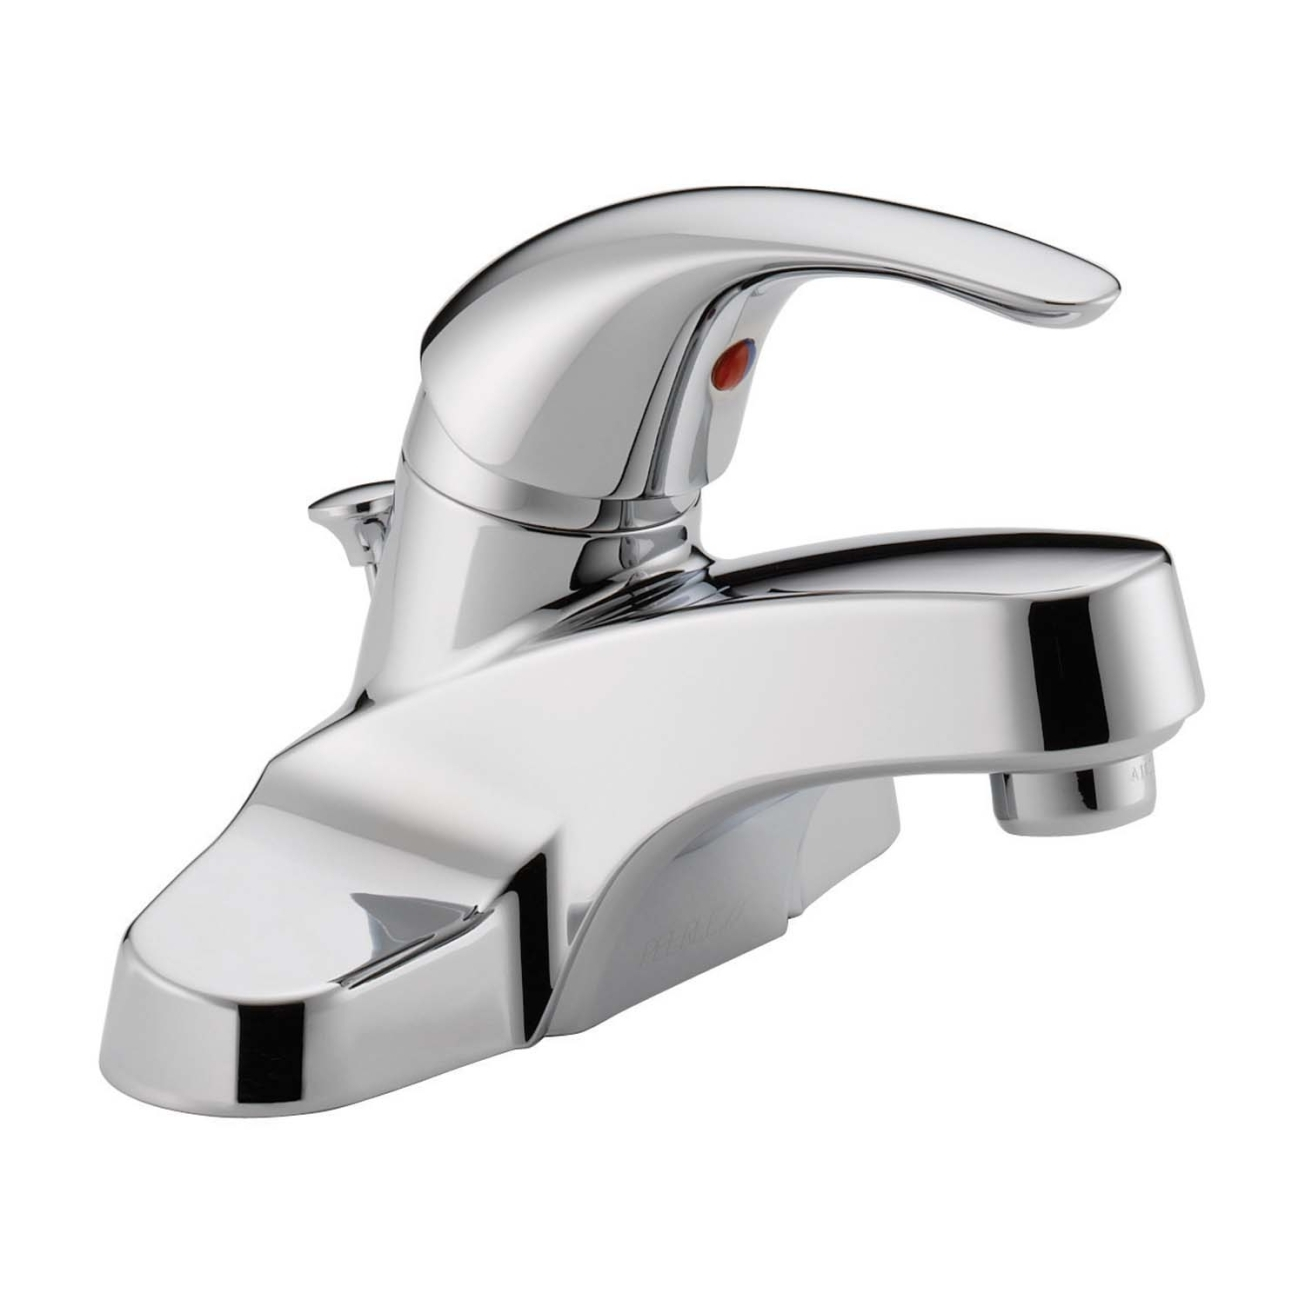 different types of single handle shower faucets different types of single handle shower faucets bathroom faucets and sink faucets at ace hardware 1305 x 1305